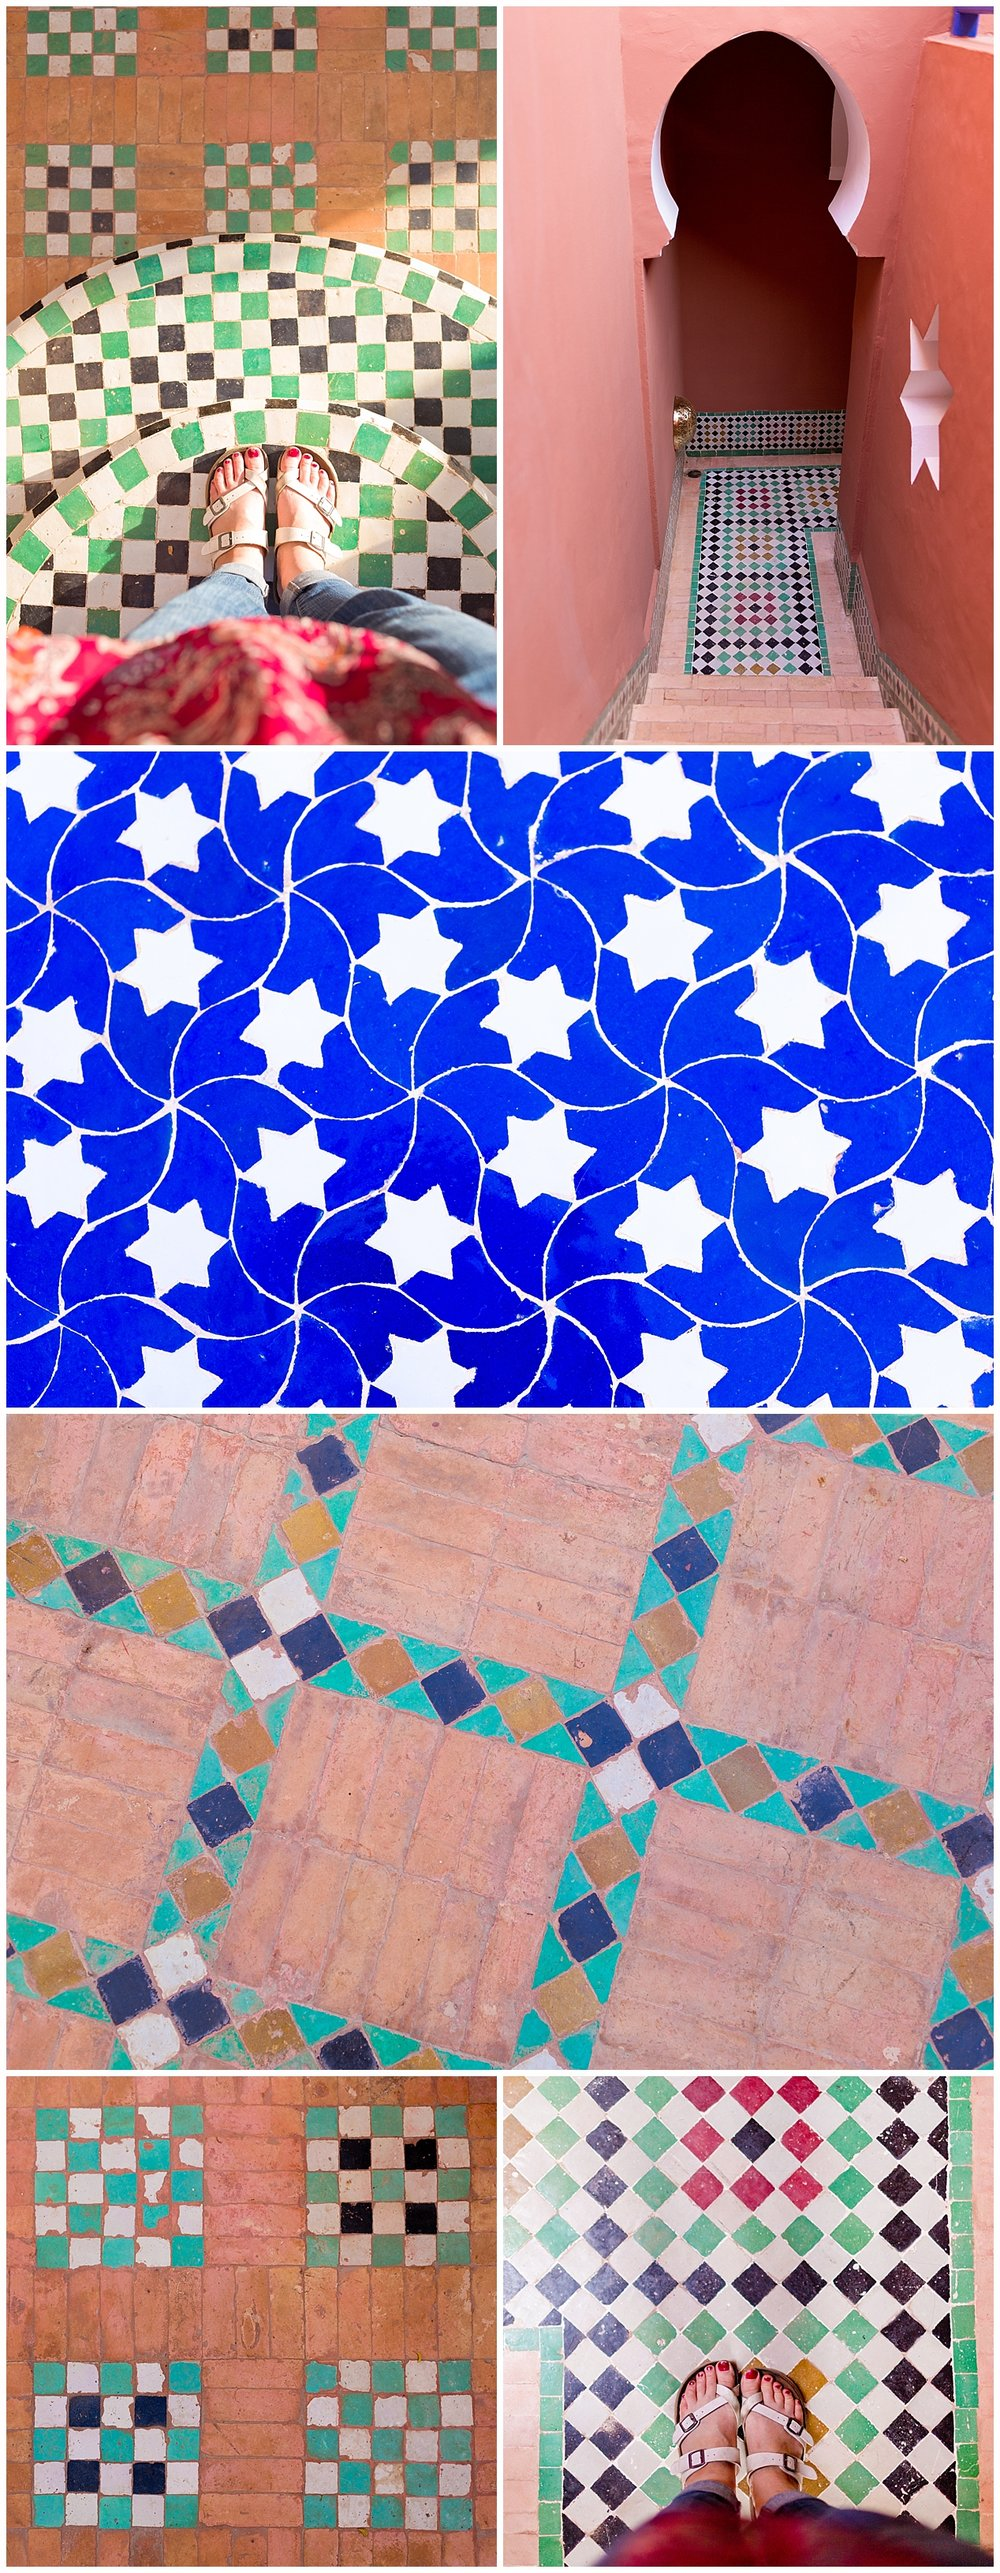 colorful Moroccan tile at Riad Kaiss, Marrakech